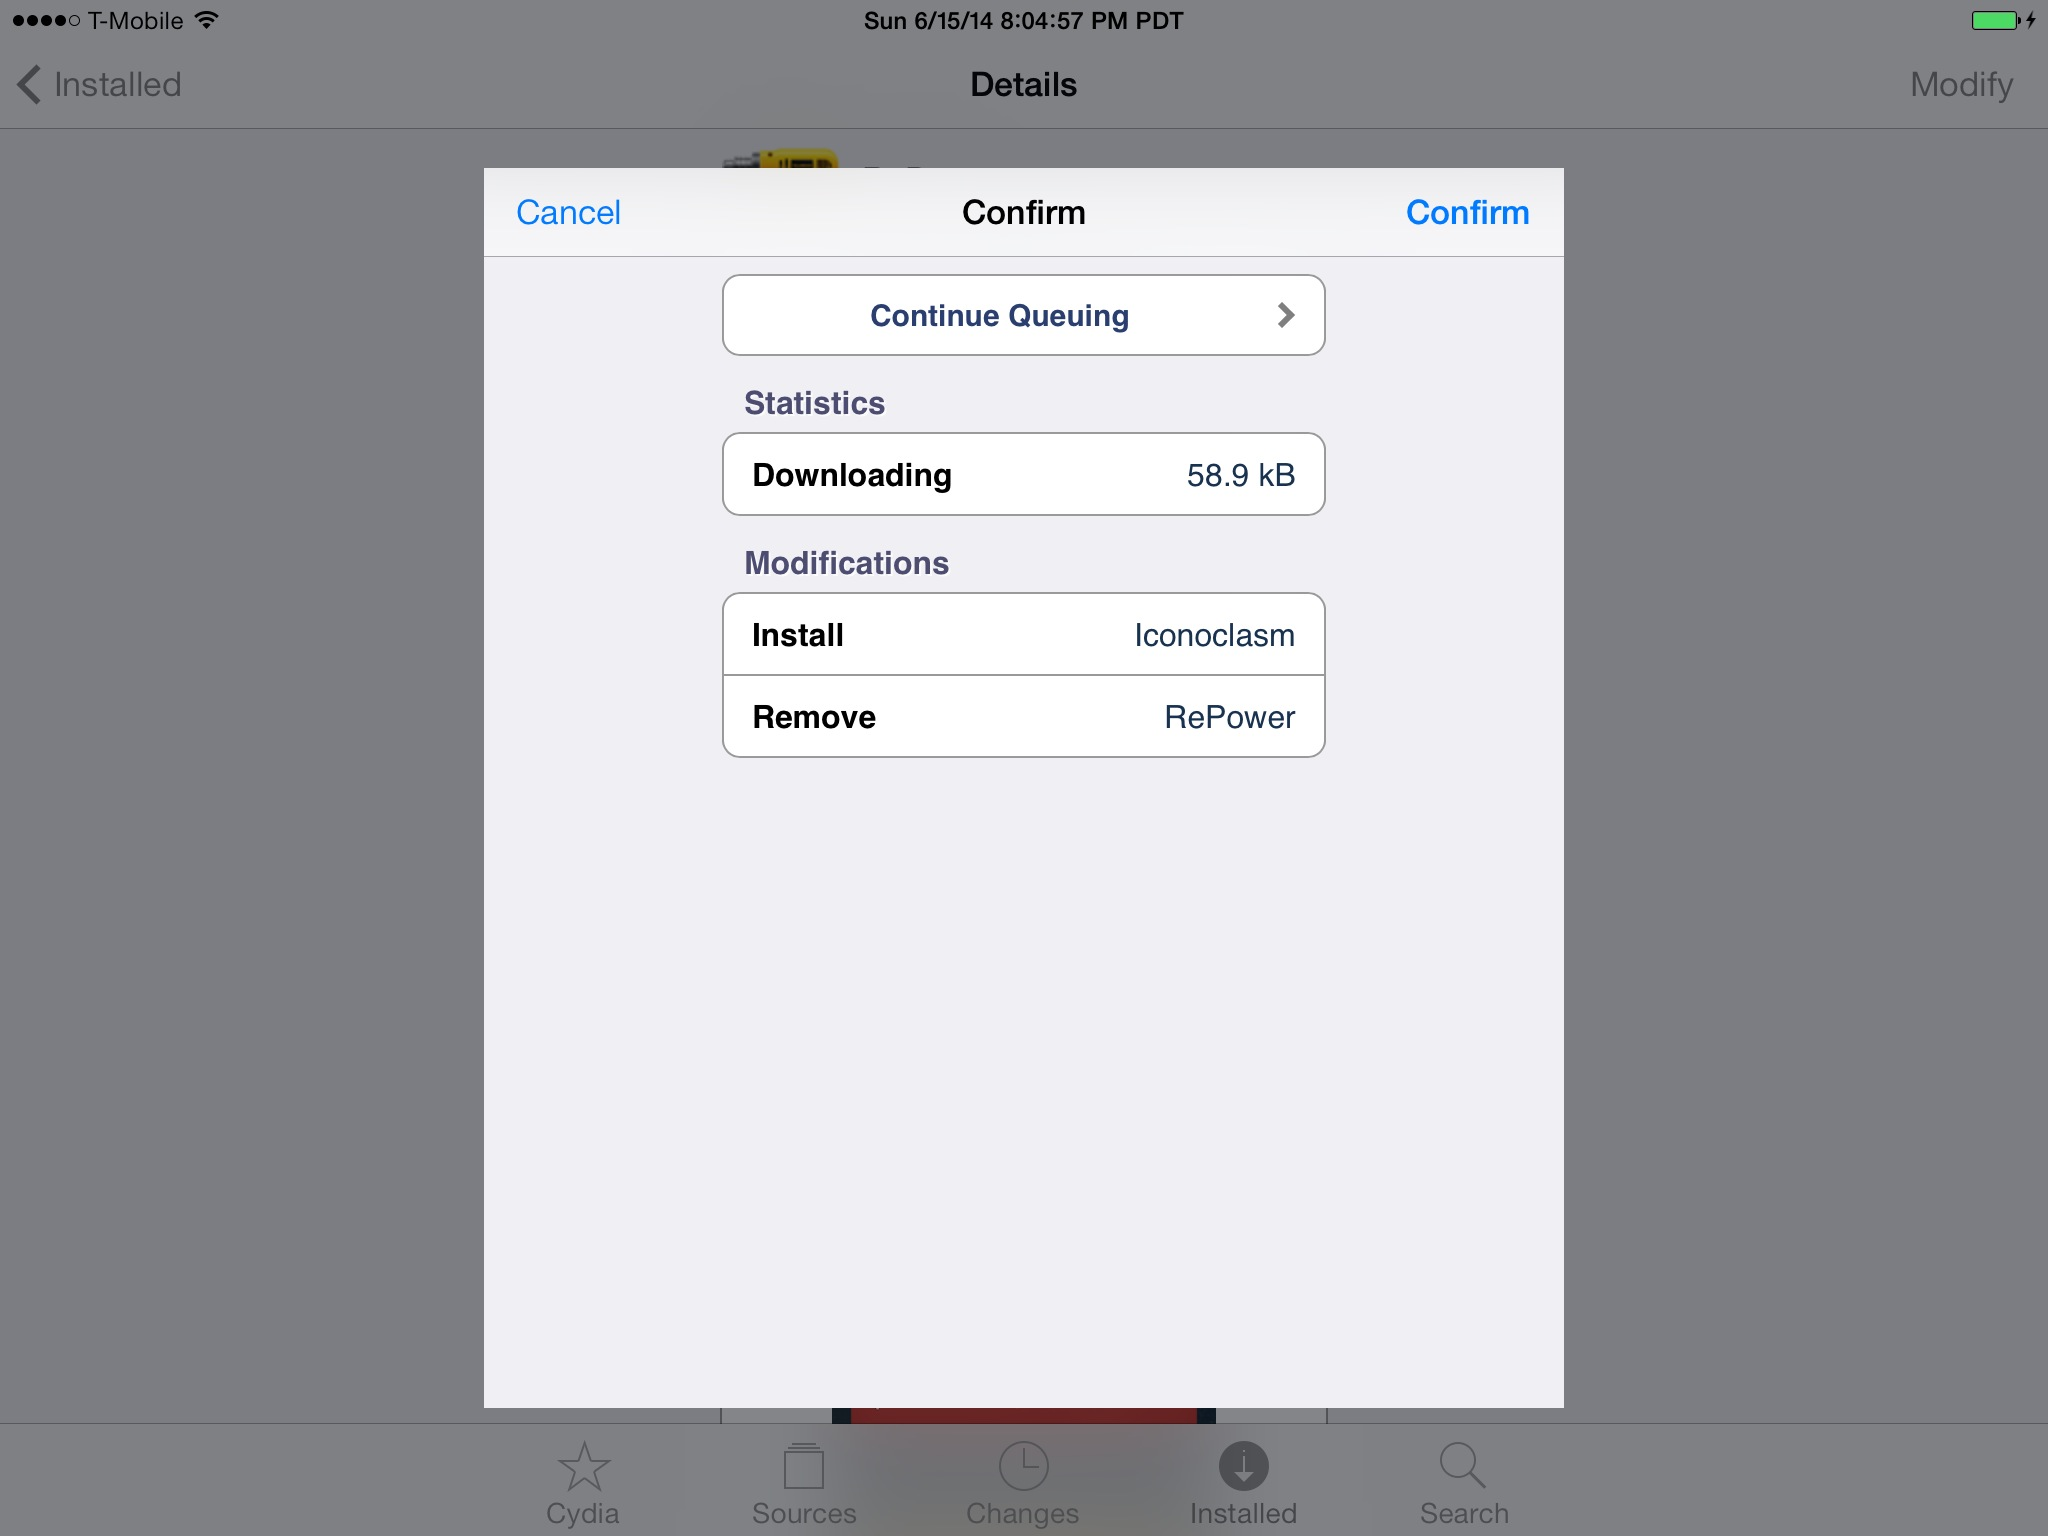 iPad - Keep getting error when trying to install\remove cydia tweaks